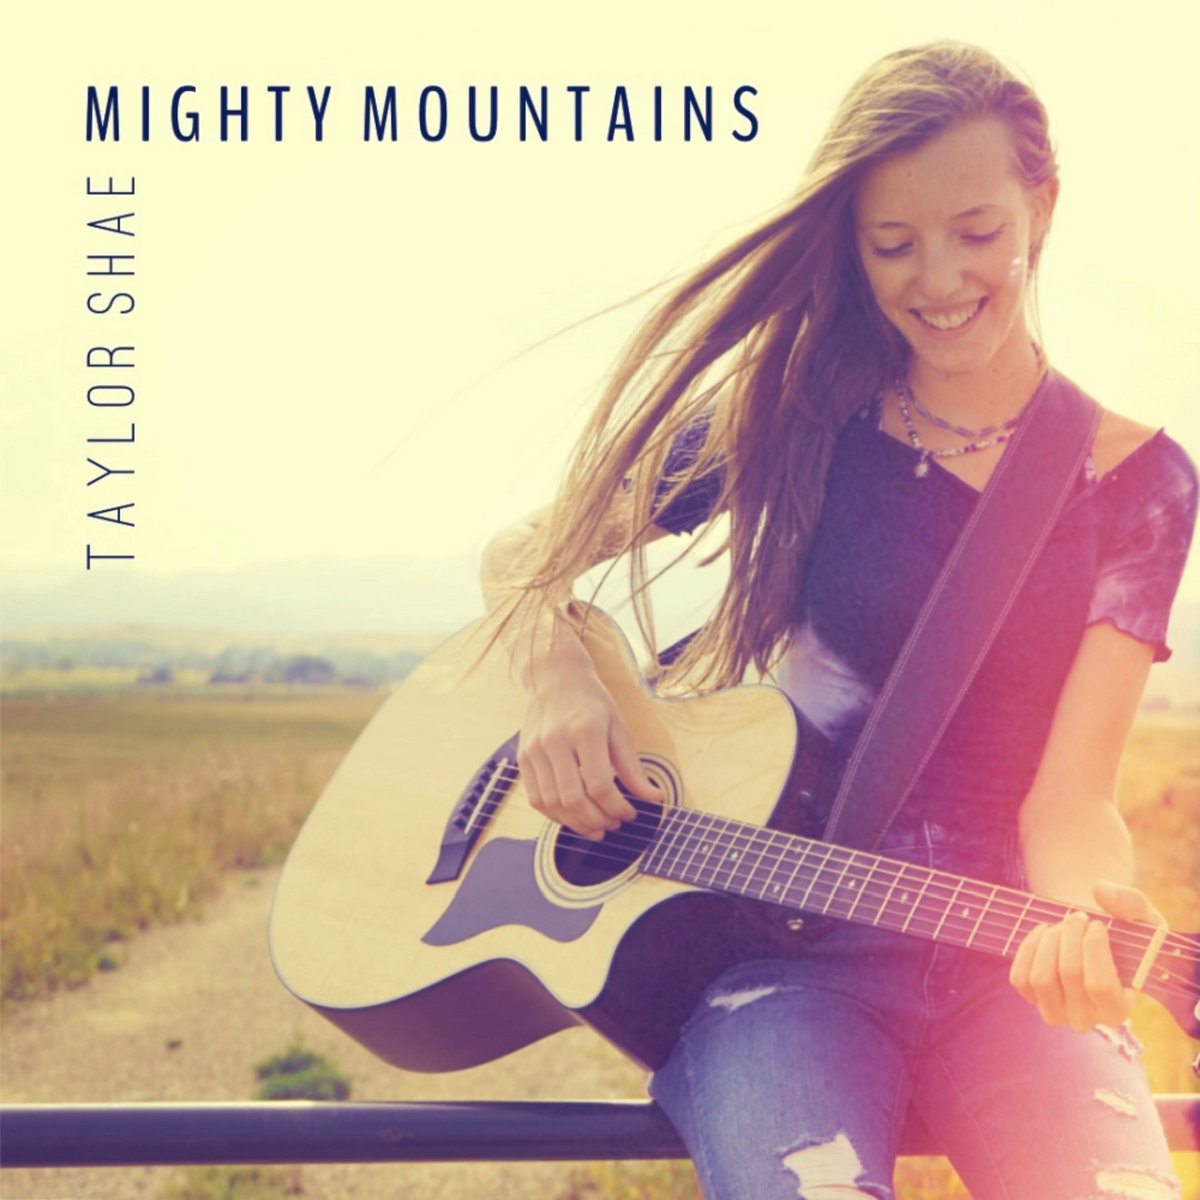 Mighty Mountains by Taylor Shae